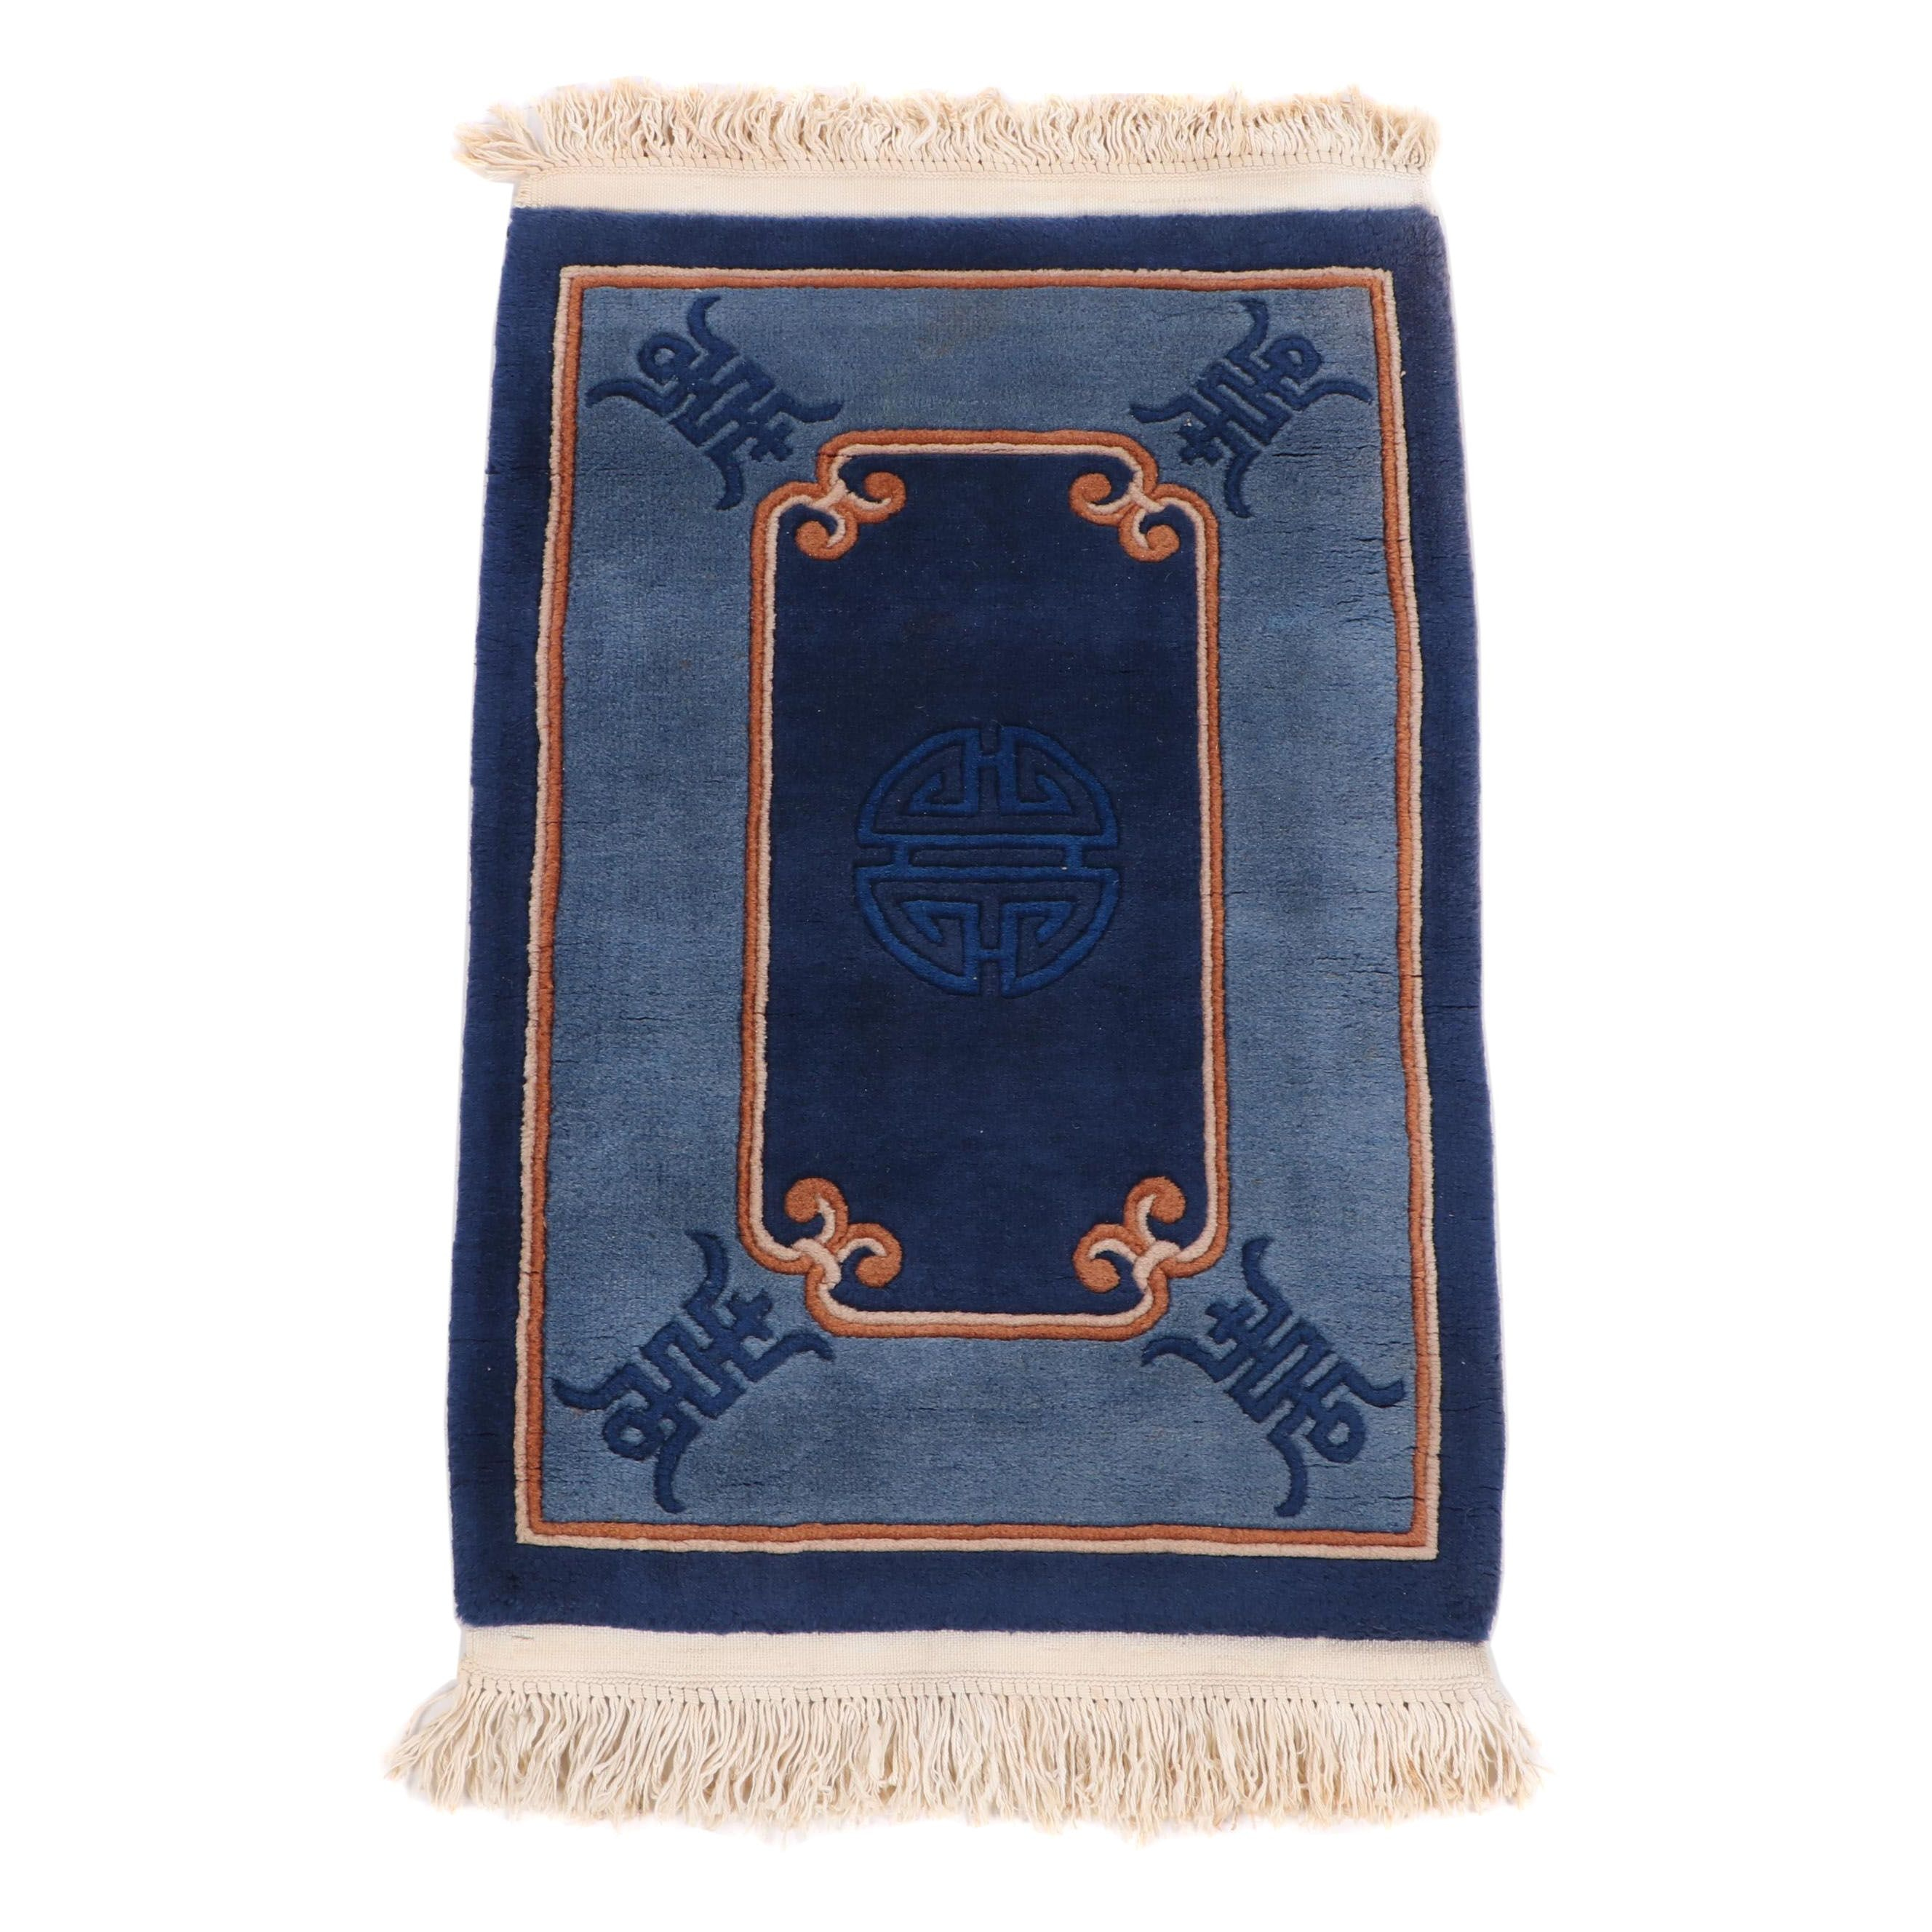 Hand-Knotted Chinese Carved Wool Rug with Longevity Symbols